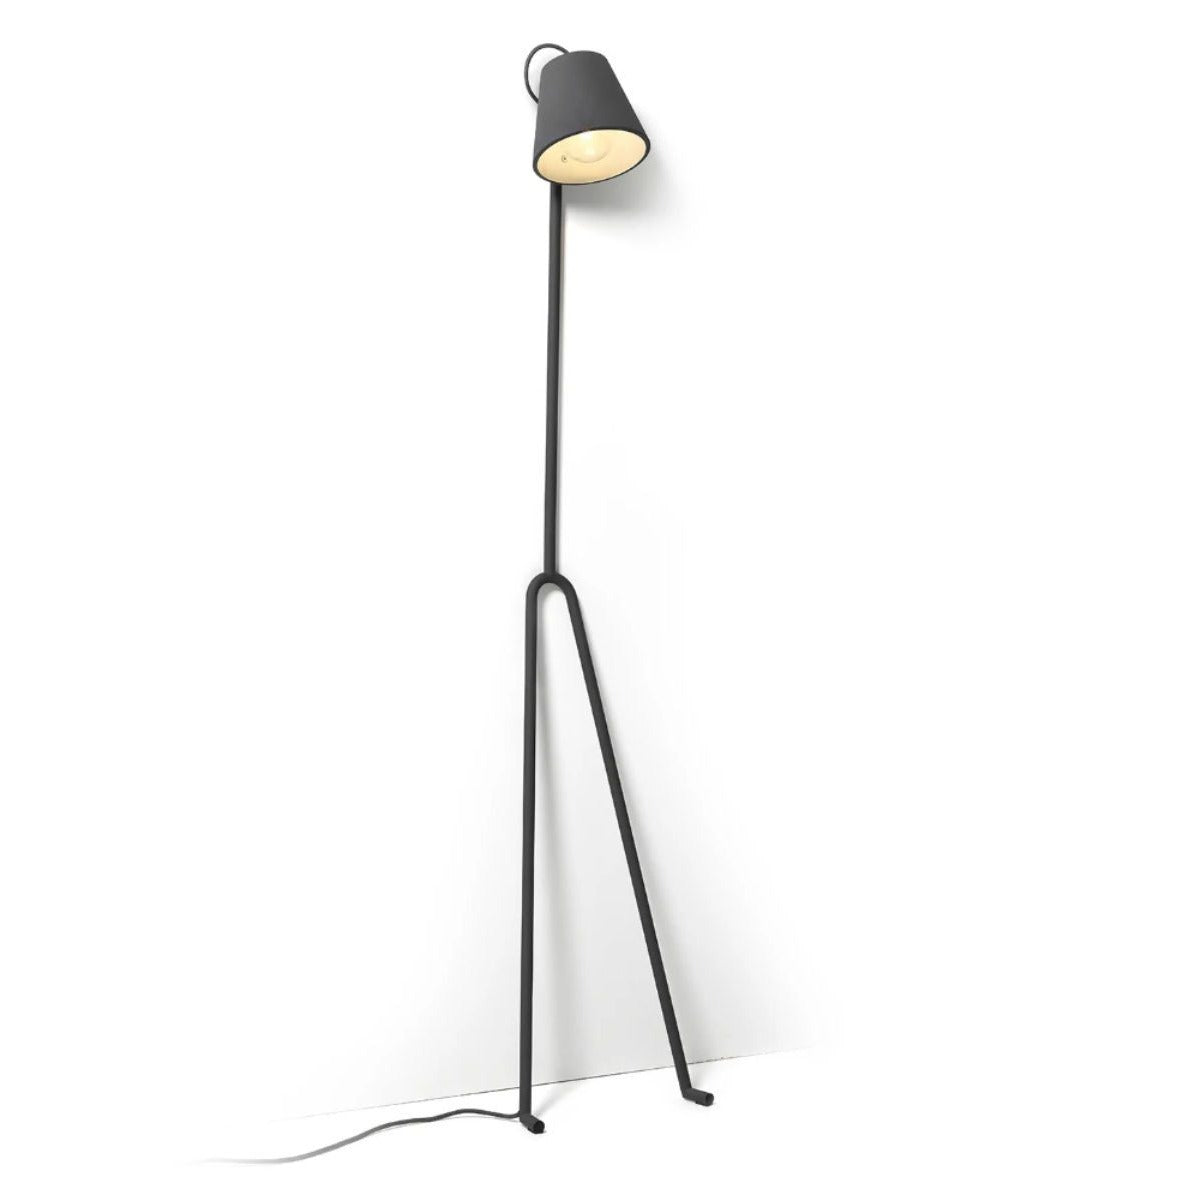 Design House Stockholm Mañana floor lamp, grey